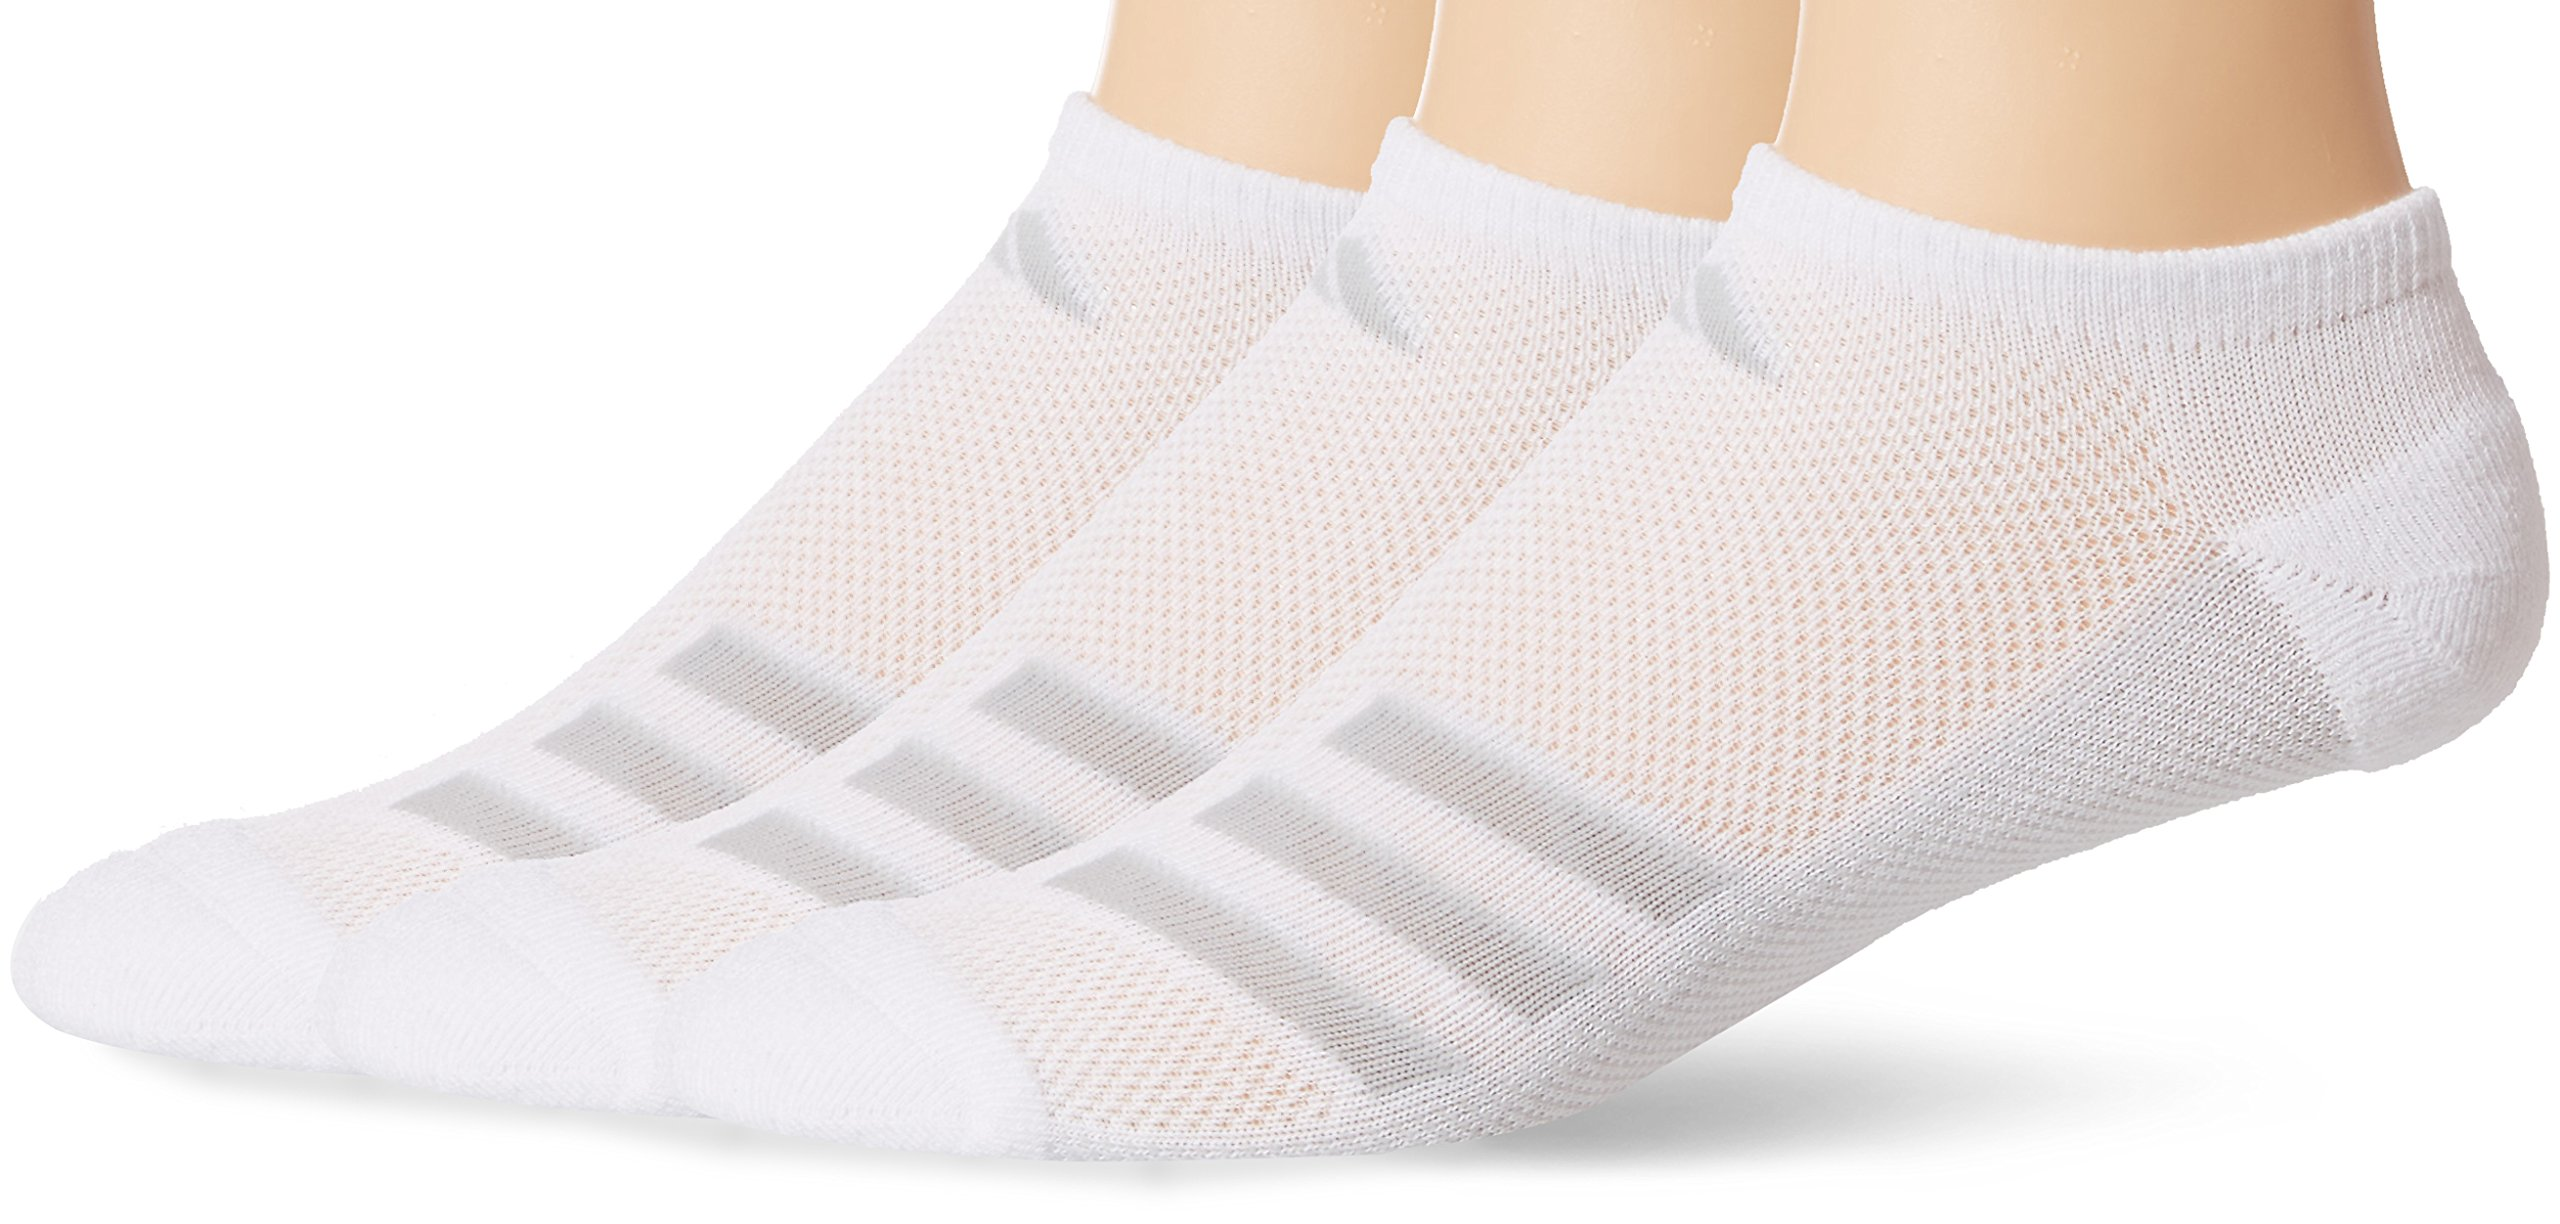 adidas Men's Climacool Superlite No Show Socks (3-Pack), White/Grey/Clear Onix, Size 6-12